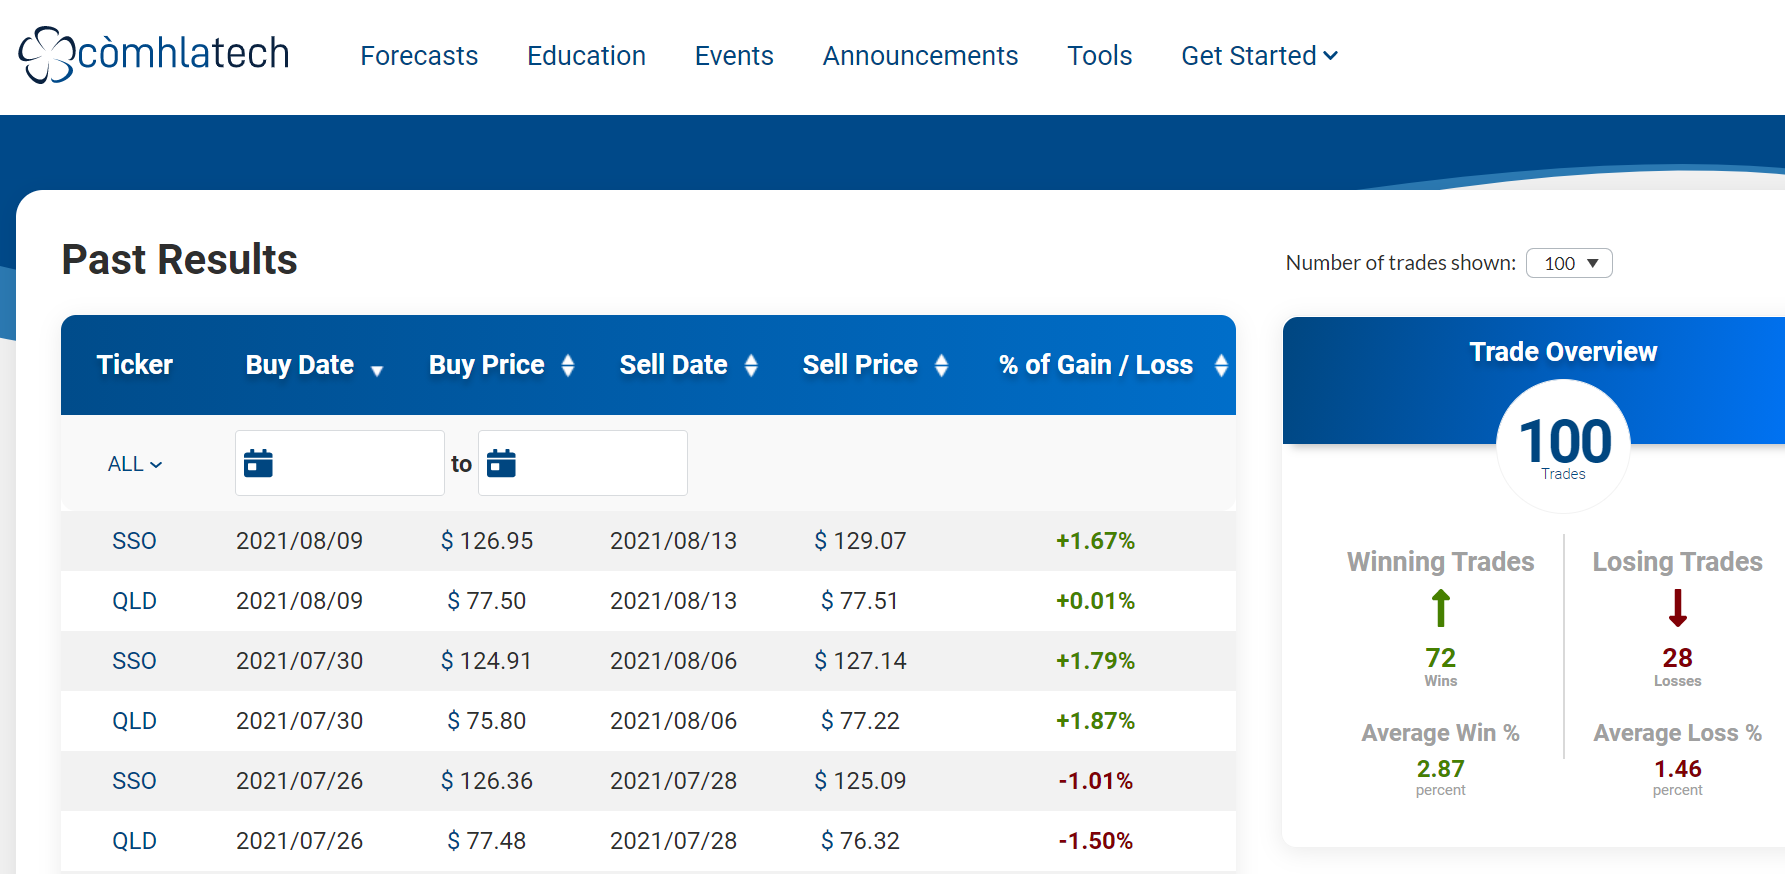 The results of ComhlaTech's Prophetick Trading Strategy in the past 100 trades.